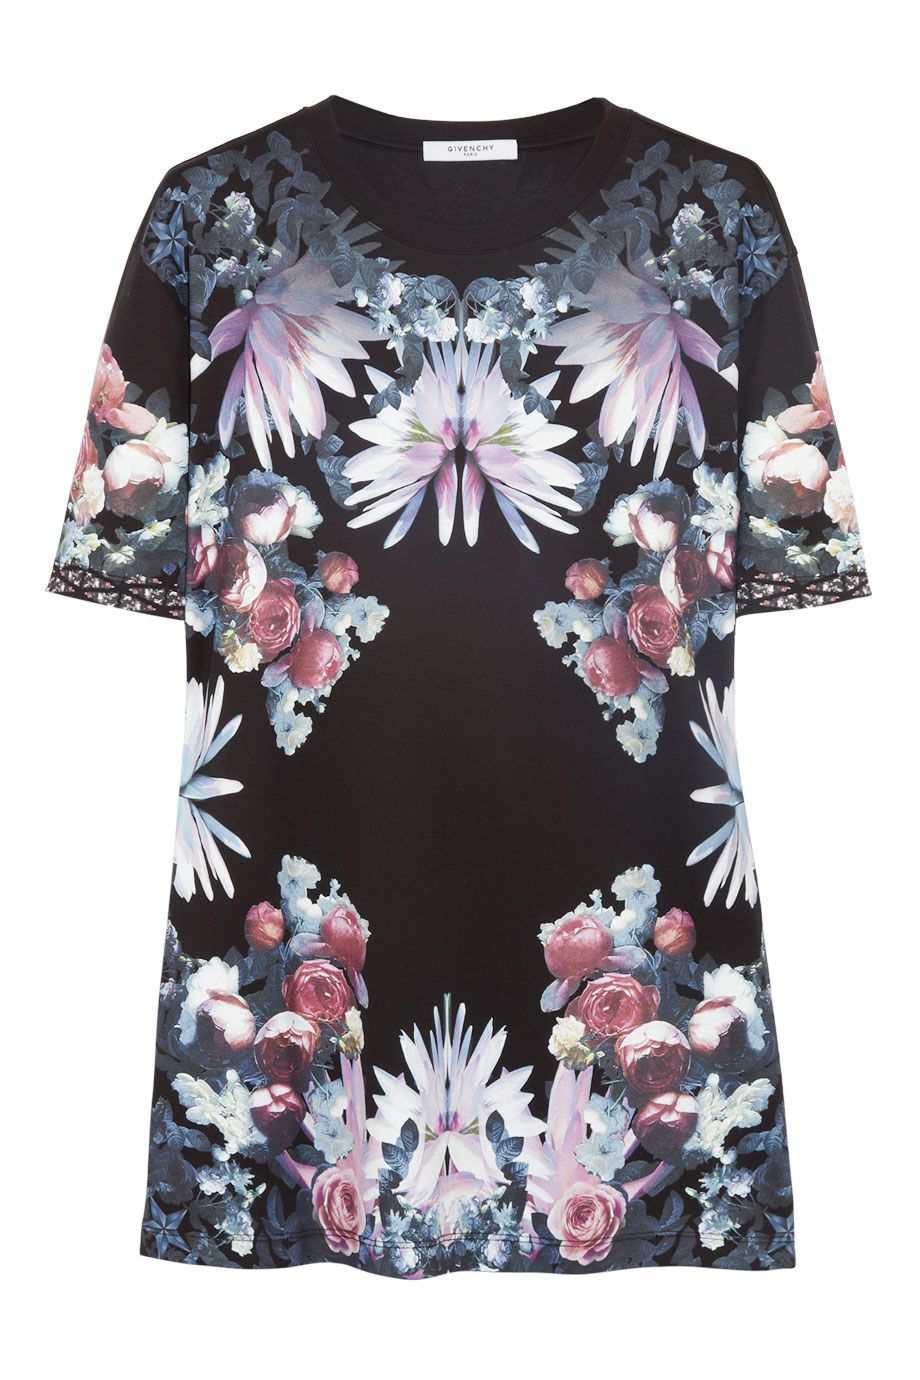 Givenchy | Floral-print cotton-jersey T-shirt